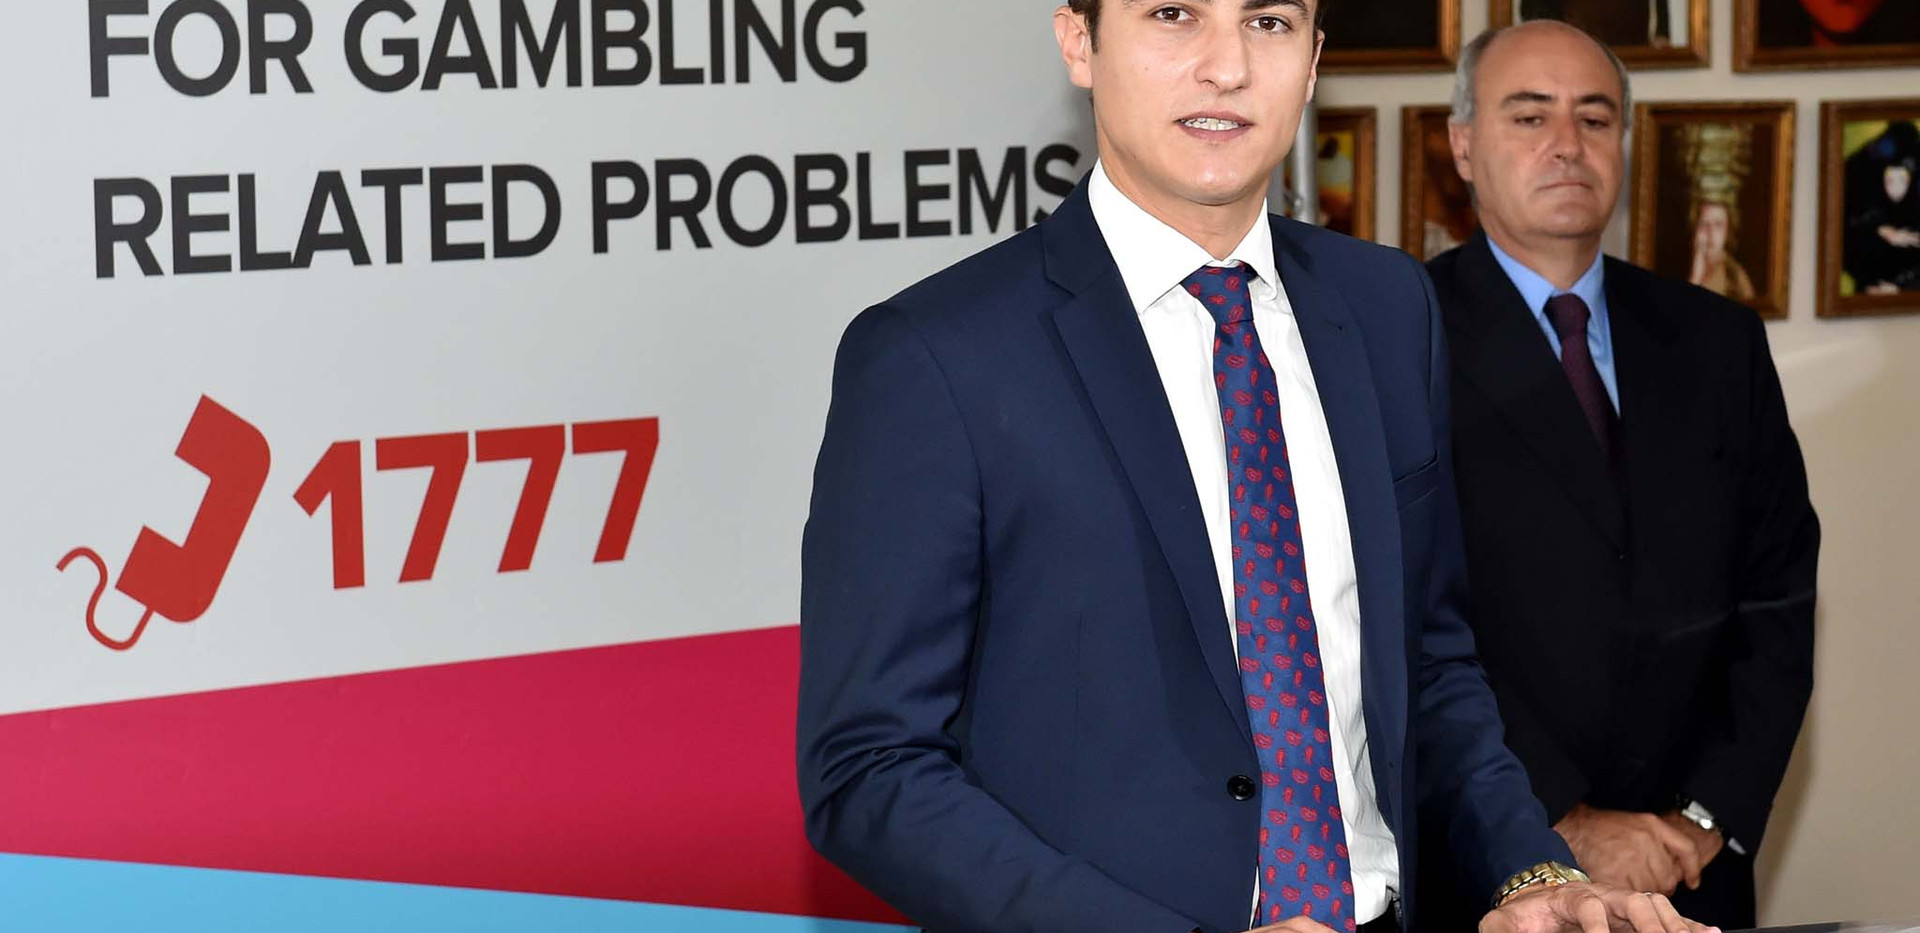 Launch of the National Gambling Helpline 1777